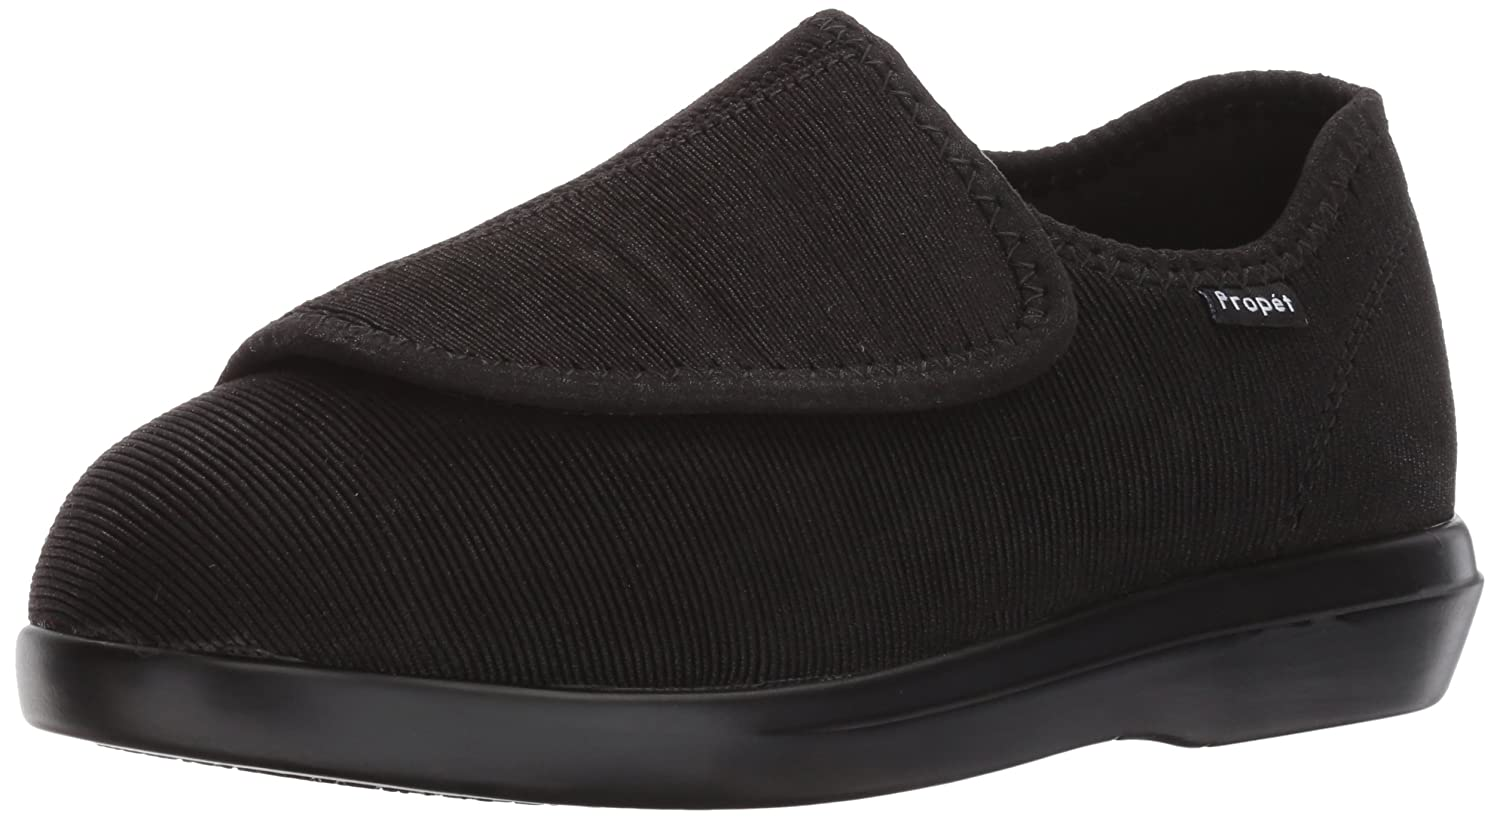 Propét Women's Cush N Foot Slipper B01N0LE8IM 6 4E US|Black Corduroy